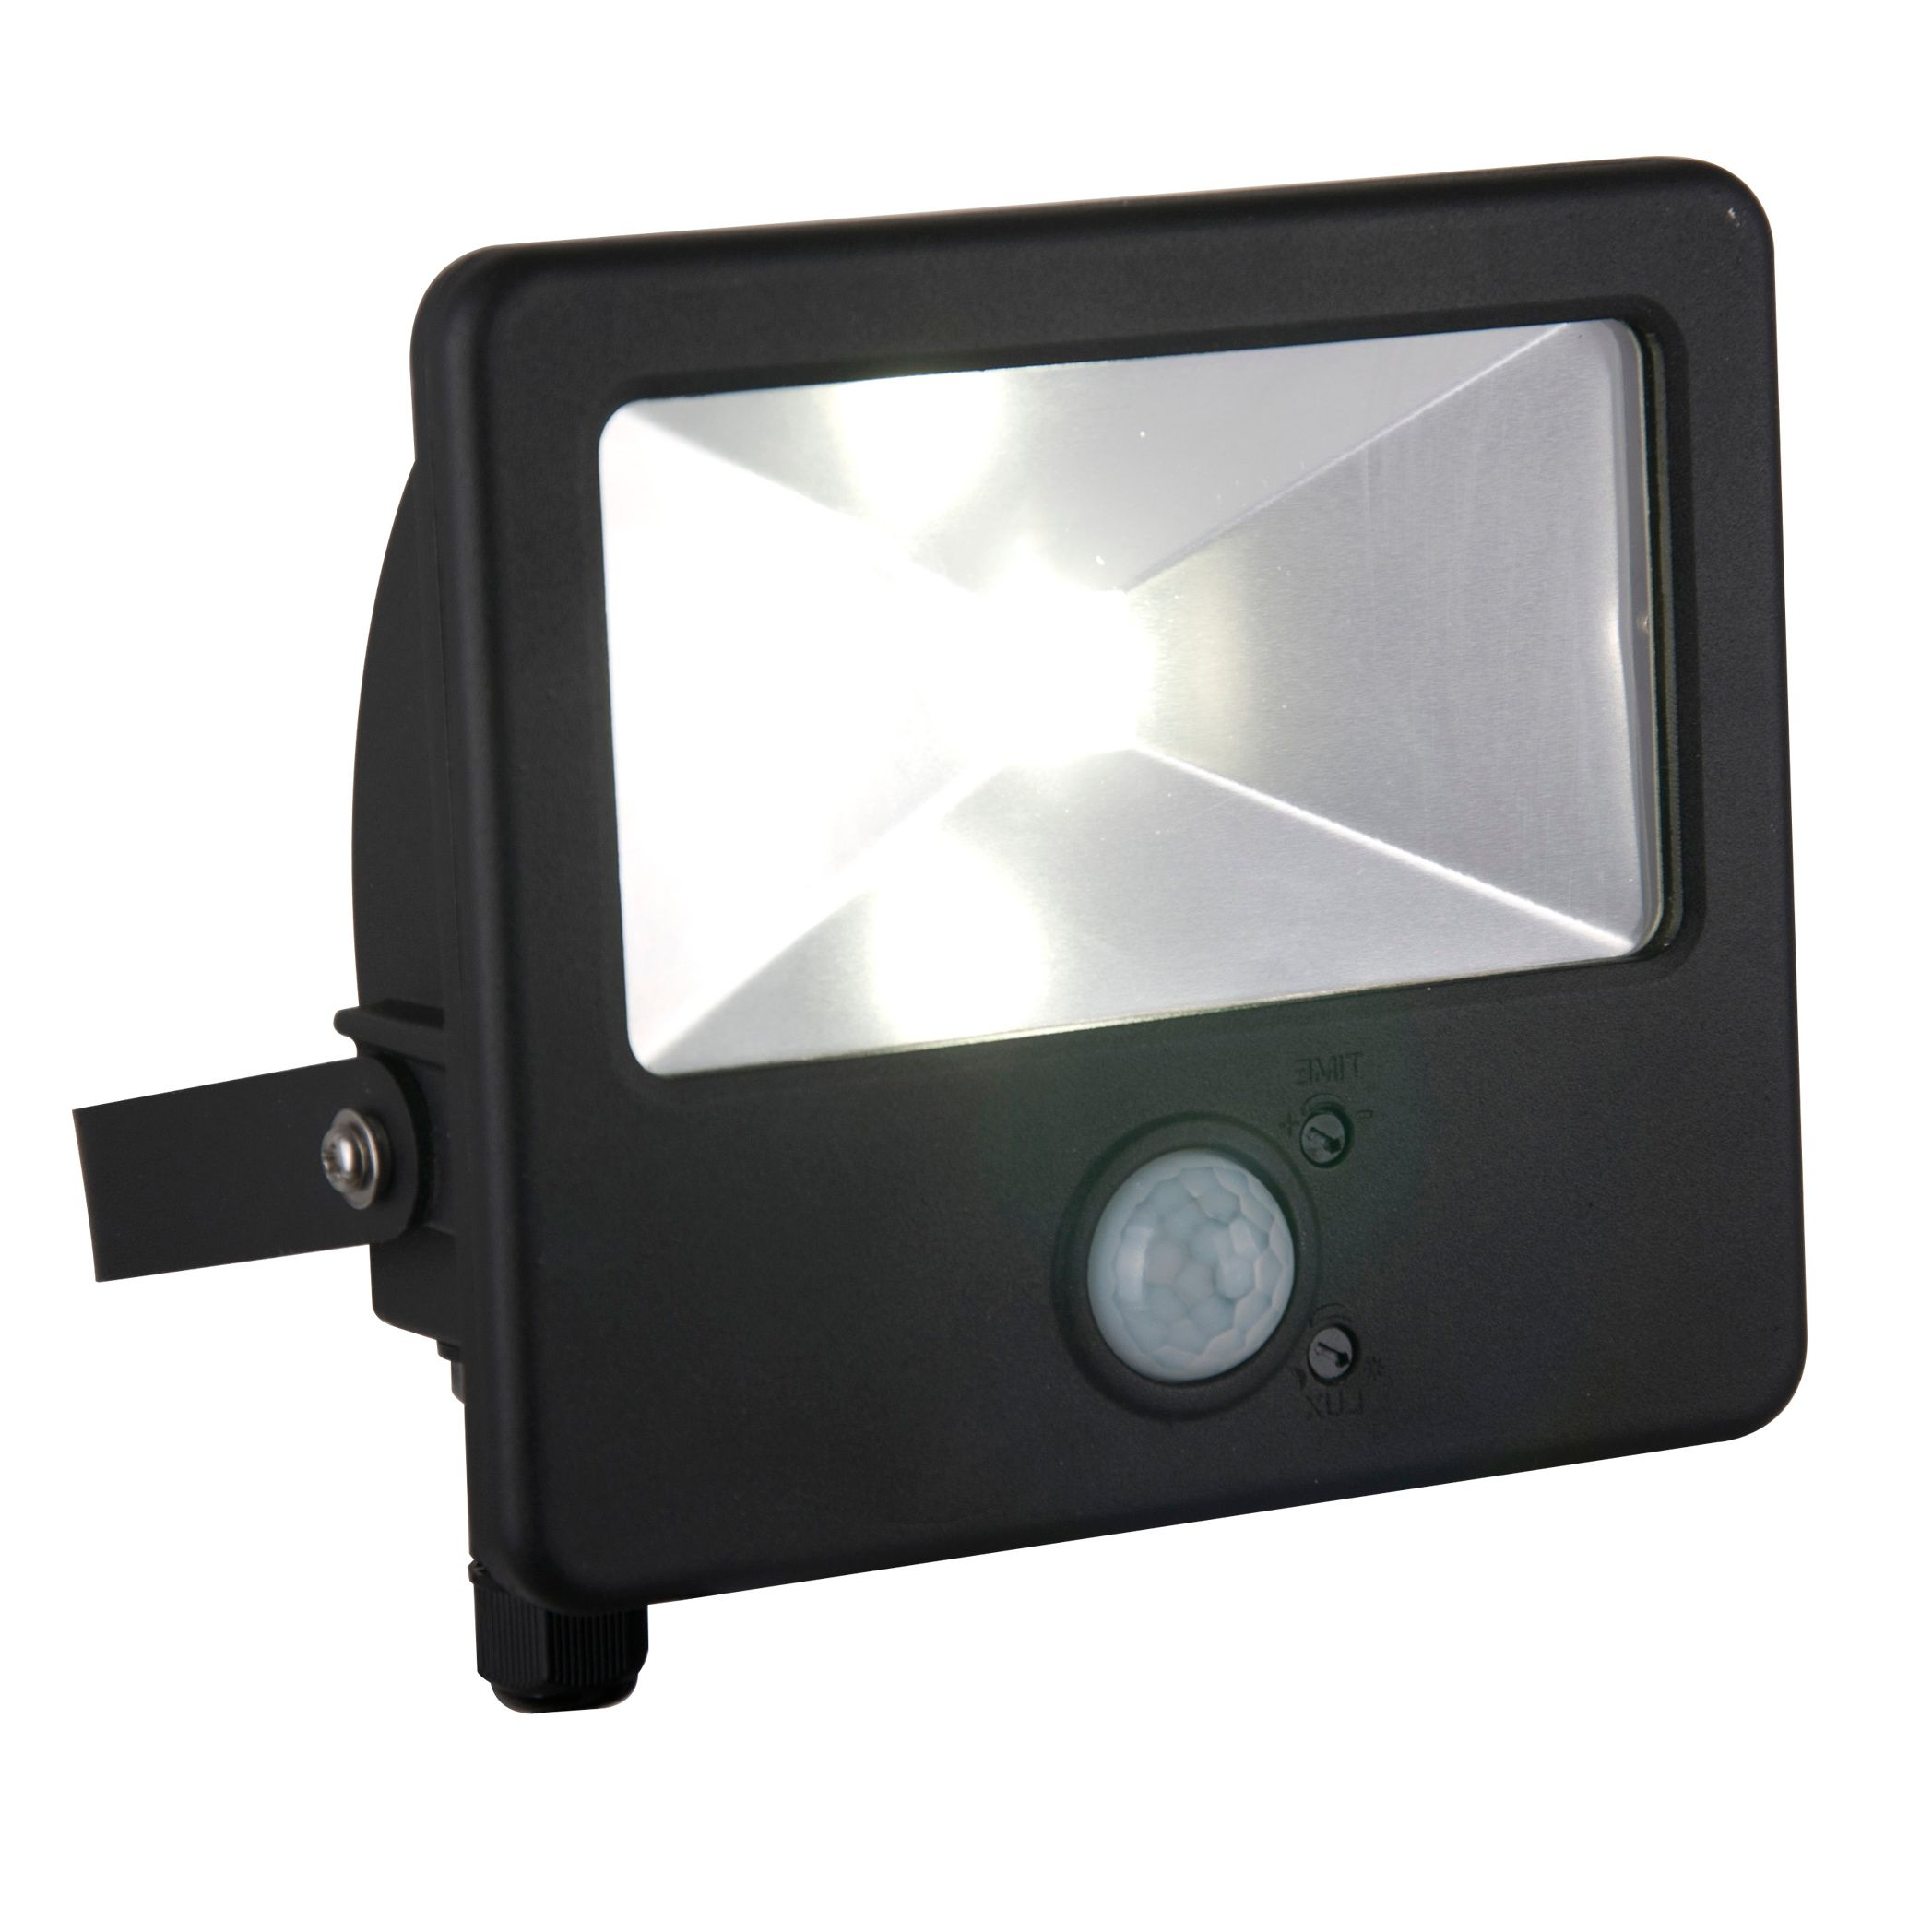 Blooma Bythos Black 10w Mains Ed External Pir Security Flood Light